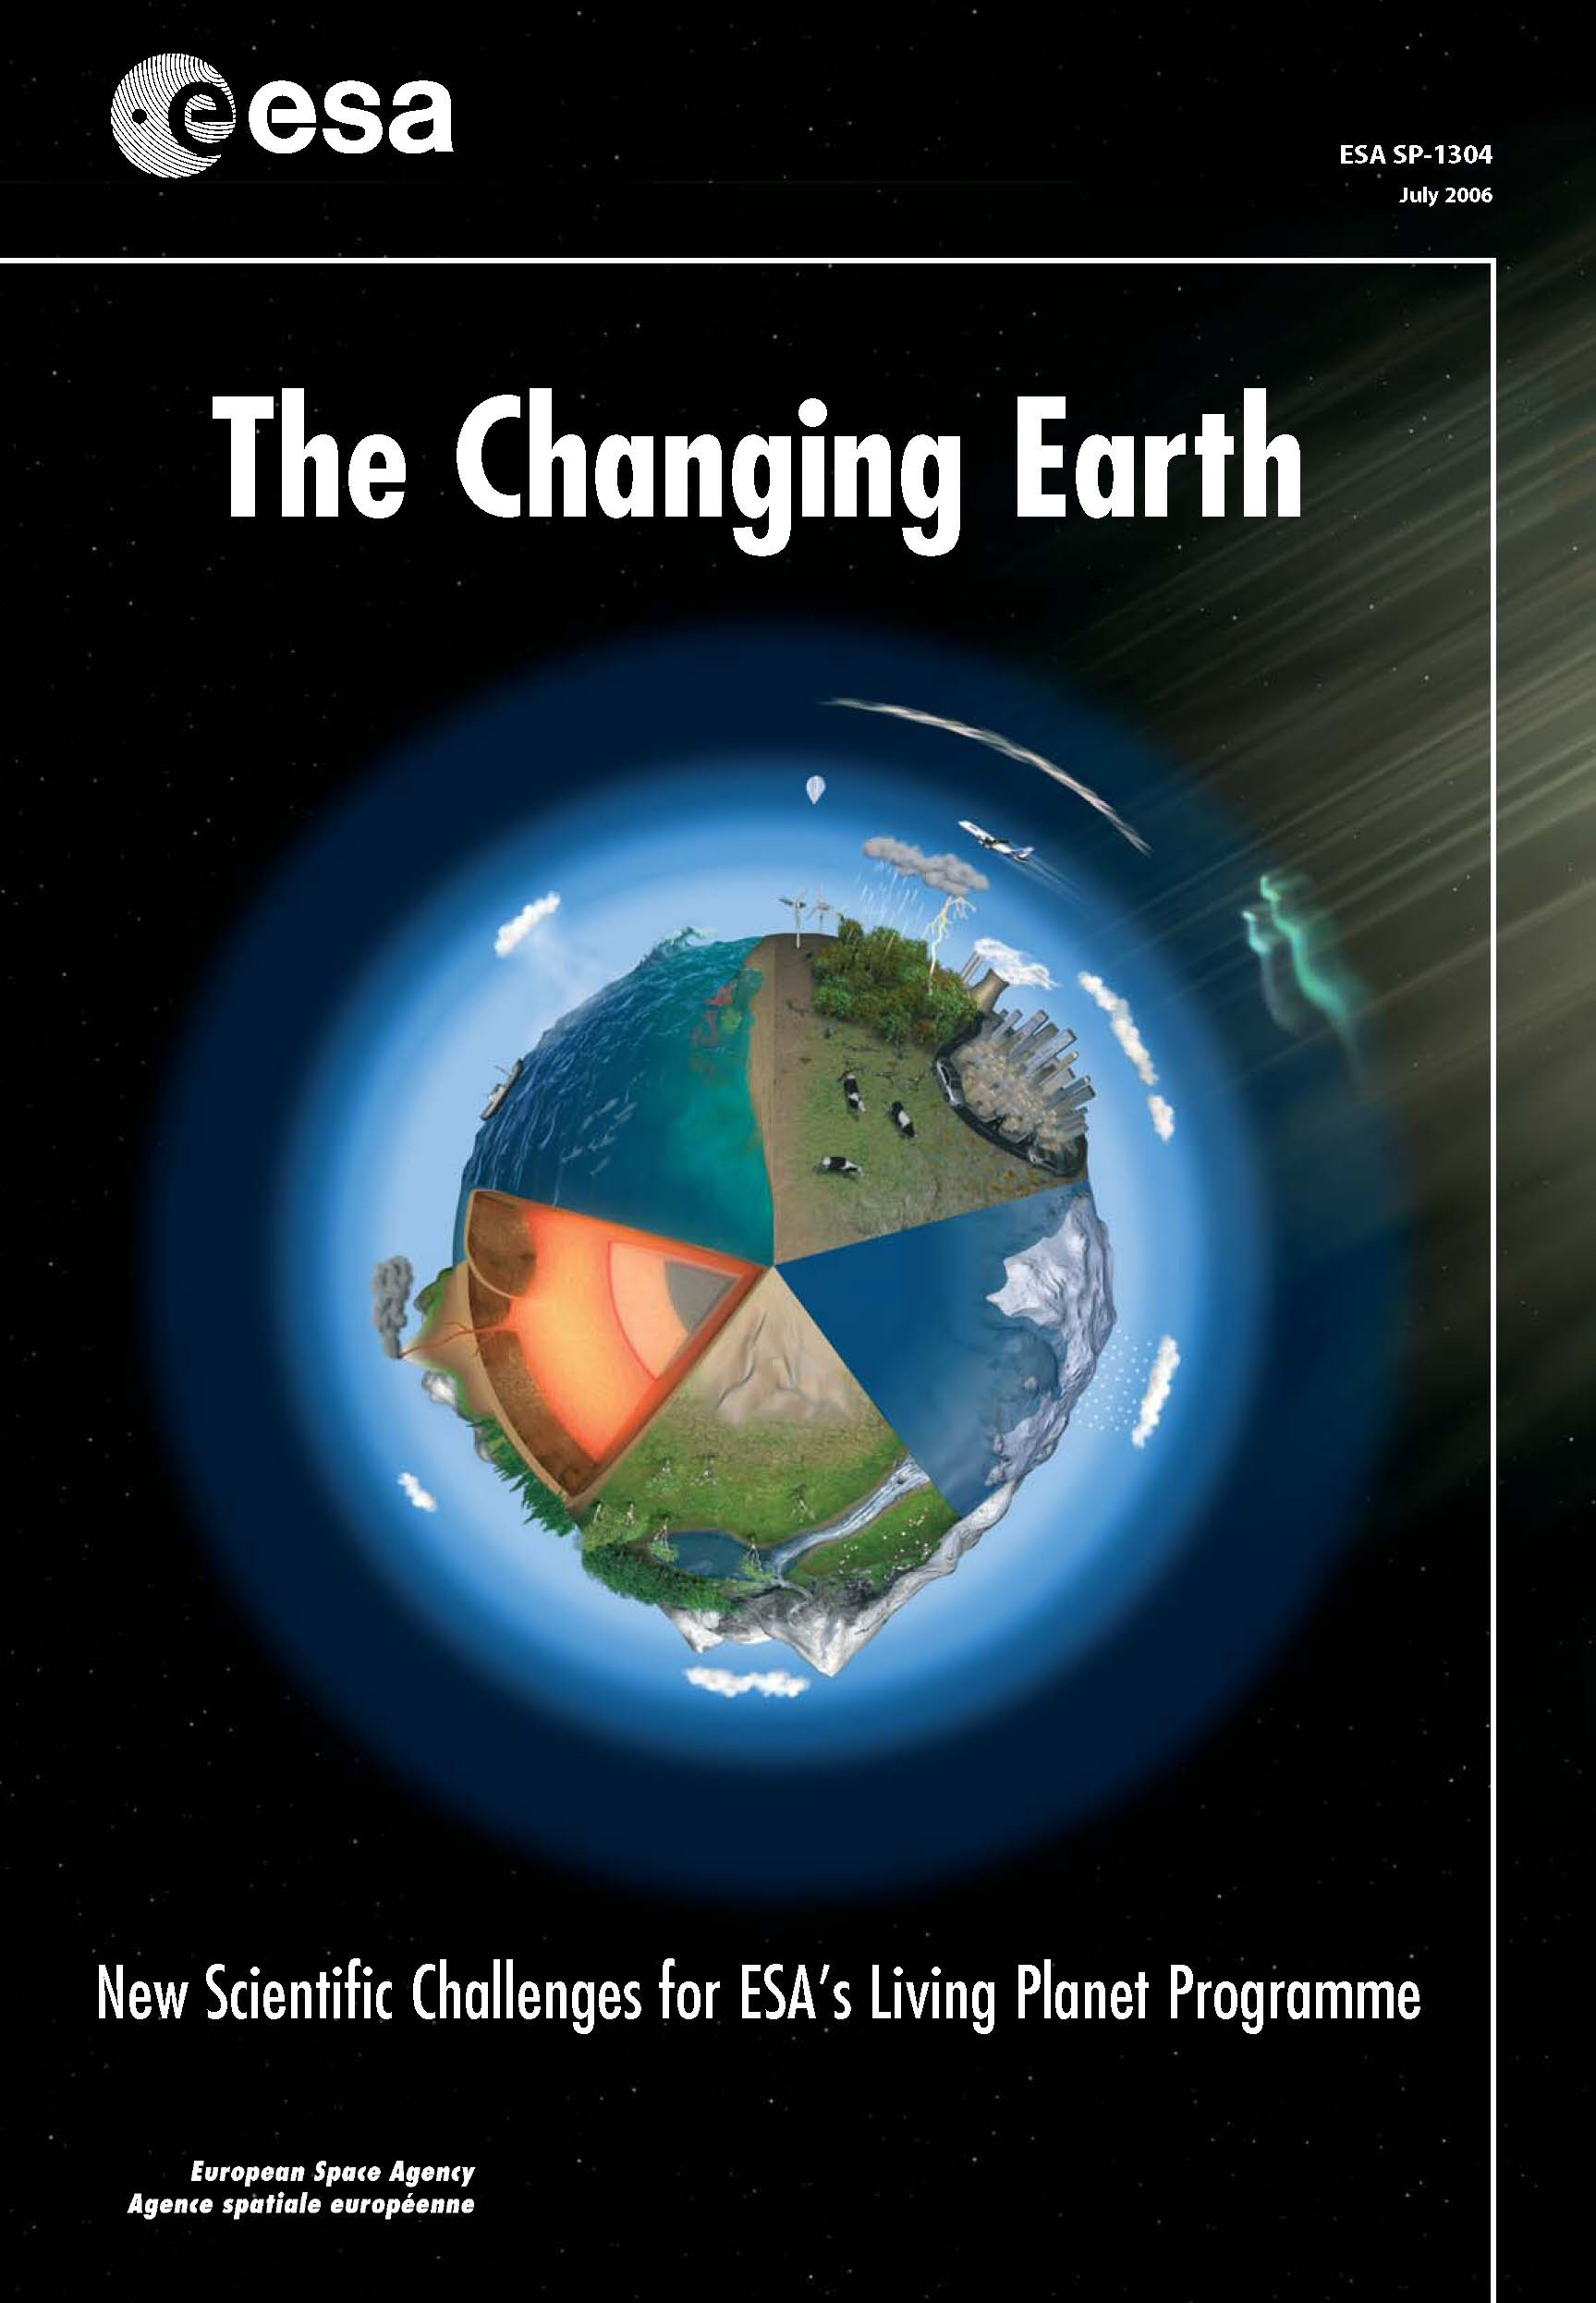 earth is changing How does the changing earth's surface affect society the changing earth's surface affects society through landslides, land.